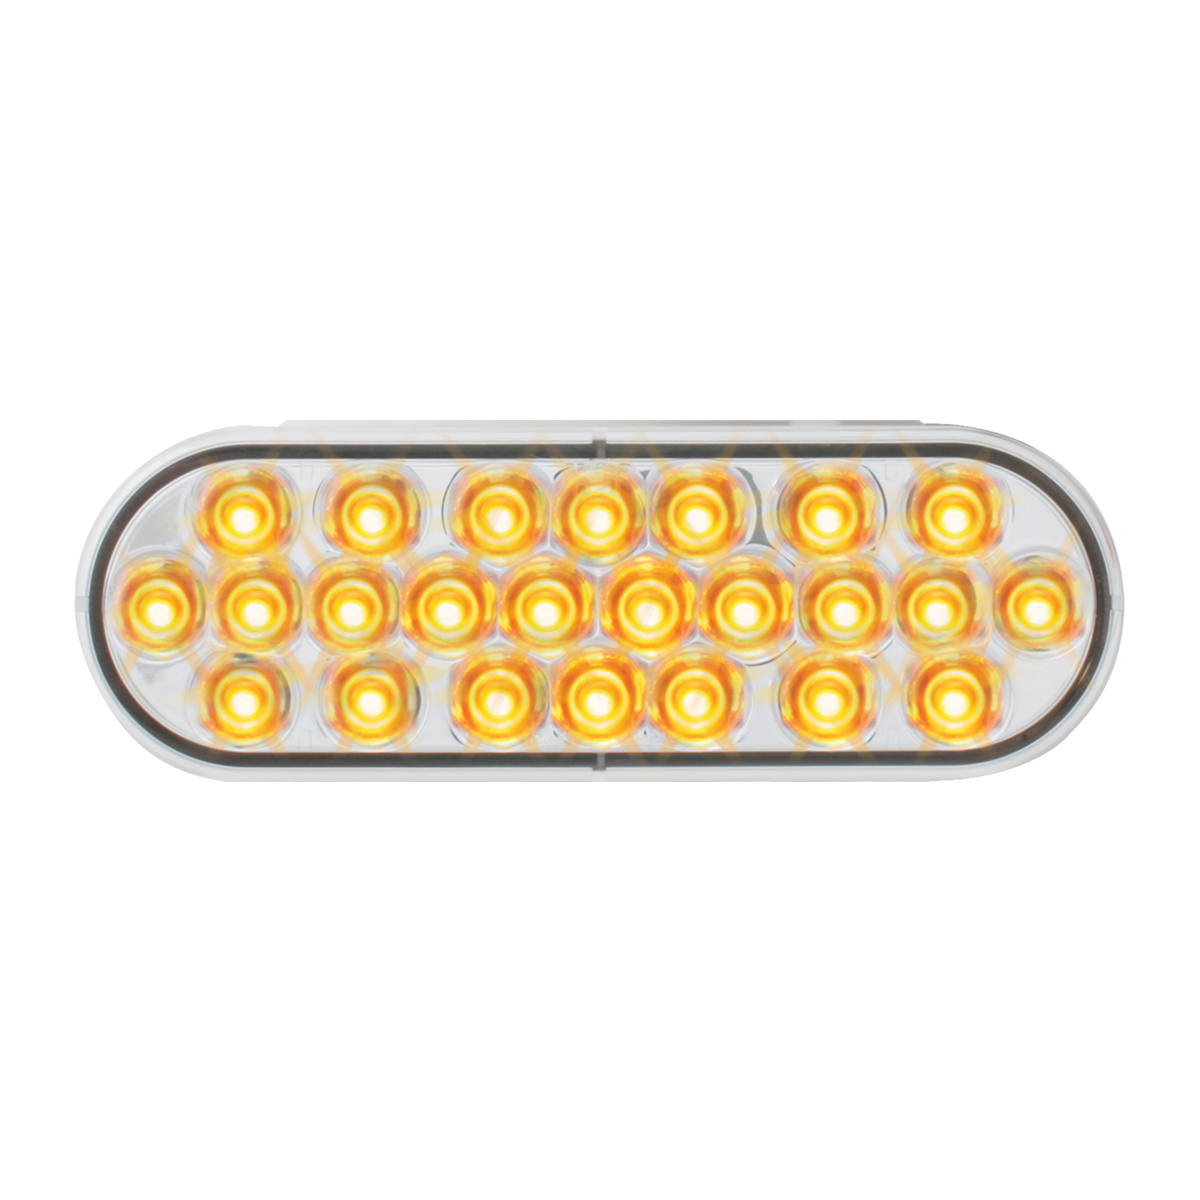 Oval Synchronous/Alternating Pearl LED Strobe Light in Amber/Clear